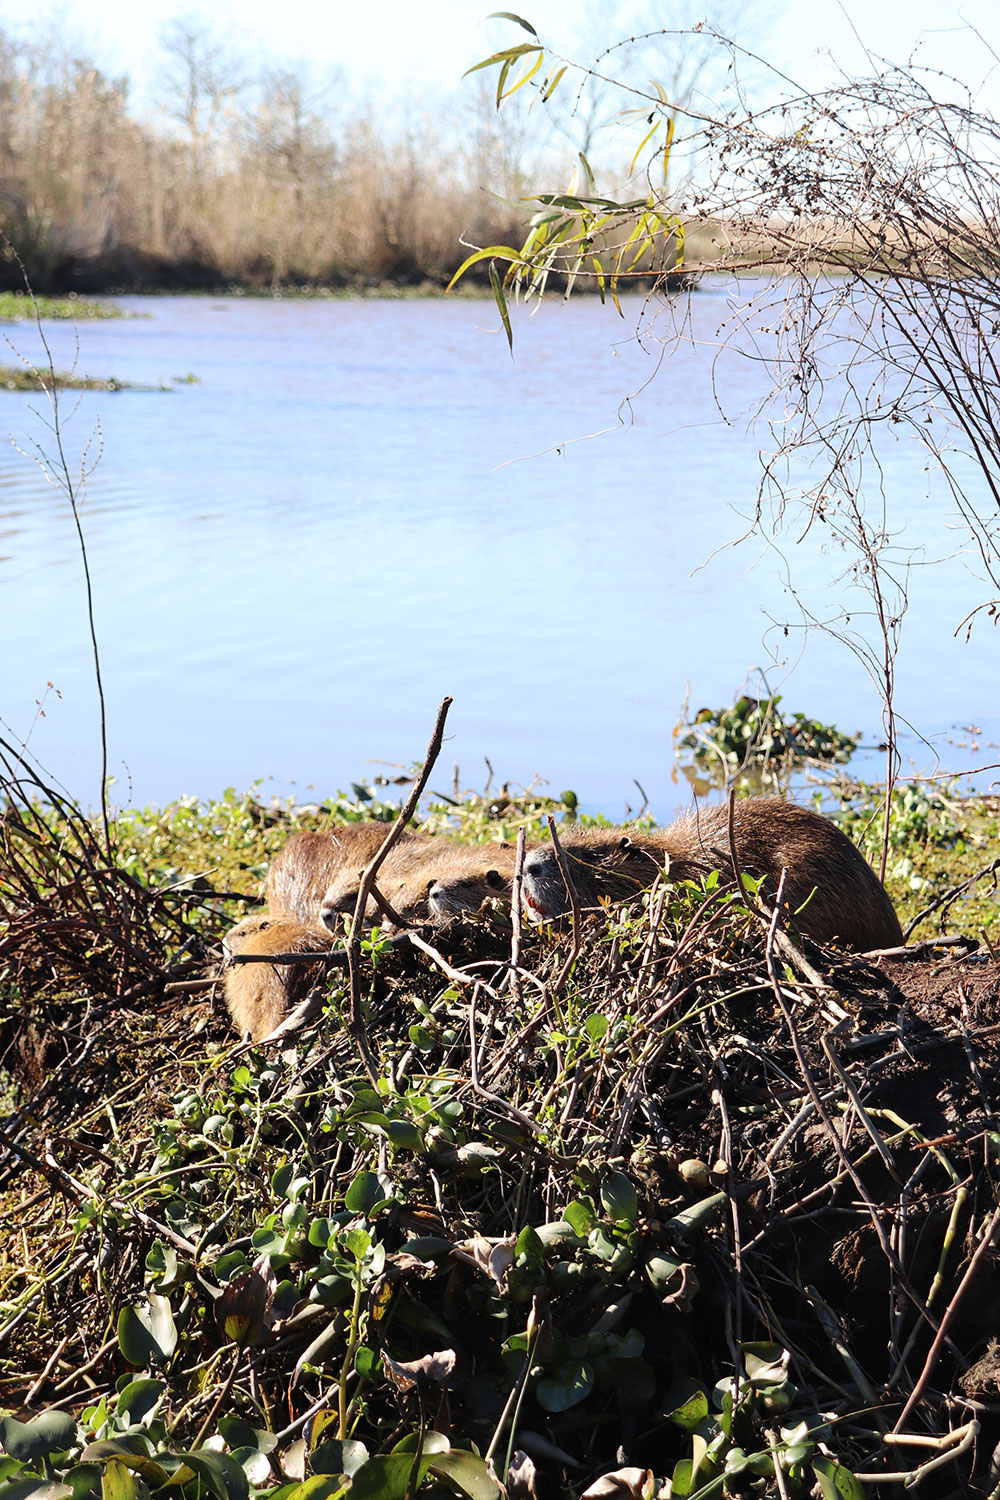 Muskrats in the Louisiana Swamp